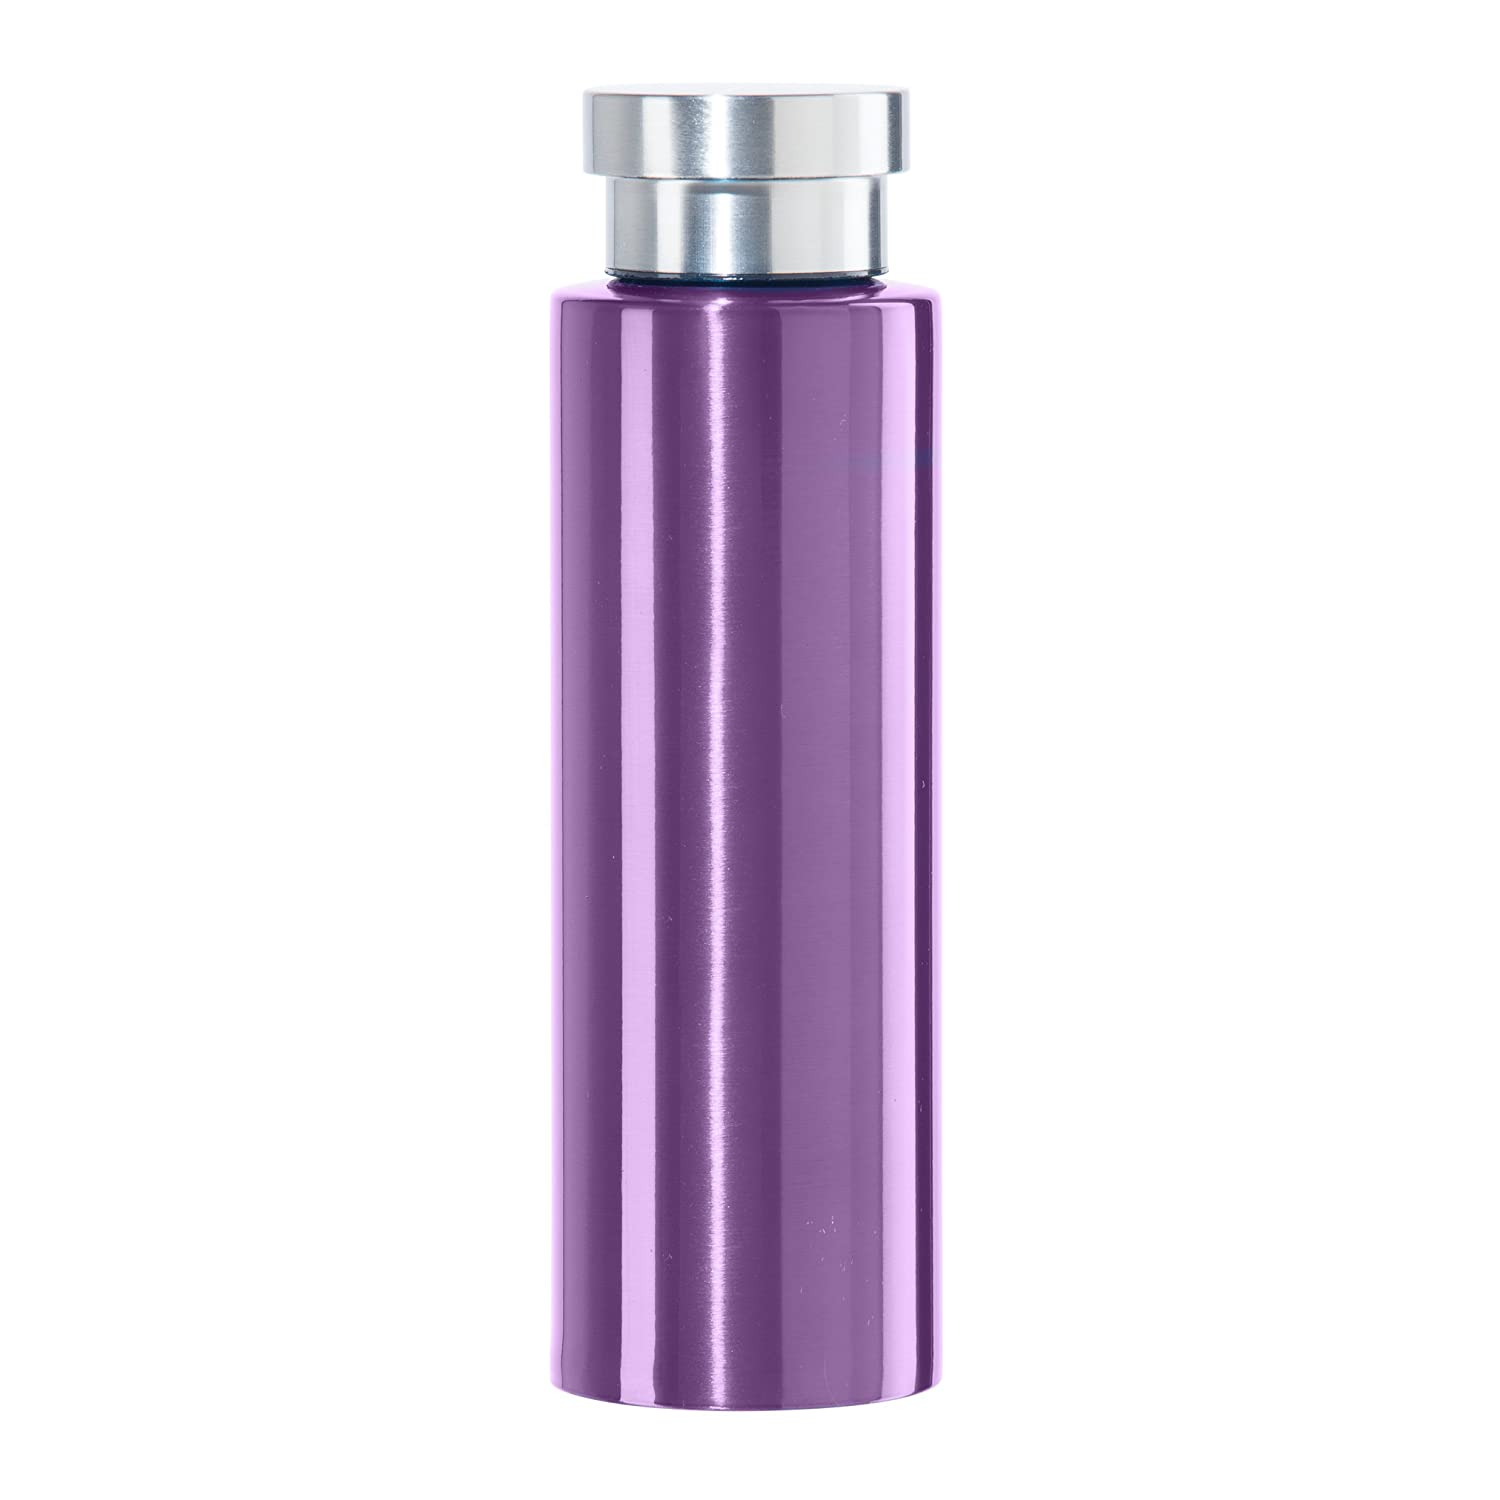 0.75. LT, 25 OZ -Pink Oggi 8093.13 Stainless Steel Cosmo Lustre Double Walled Vacuum Sealed Sport Bottle with Screw Top